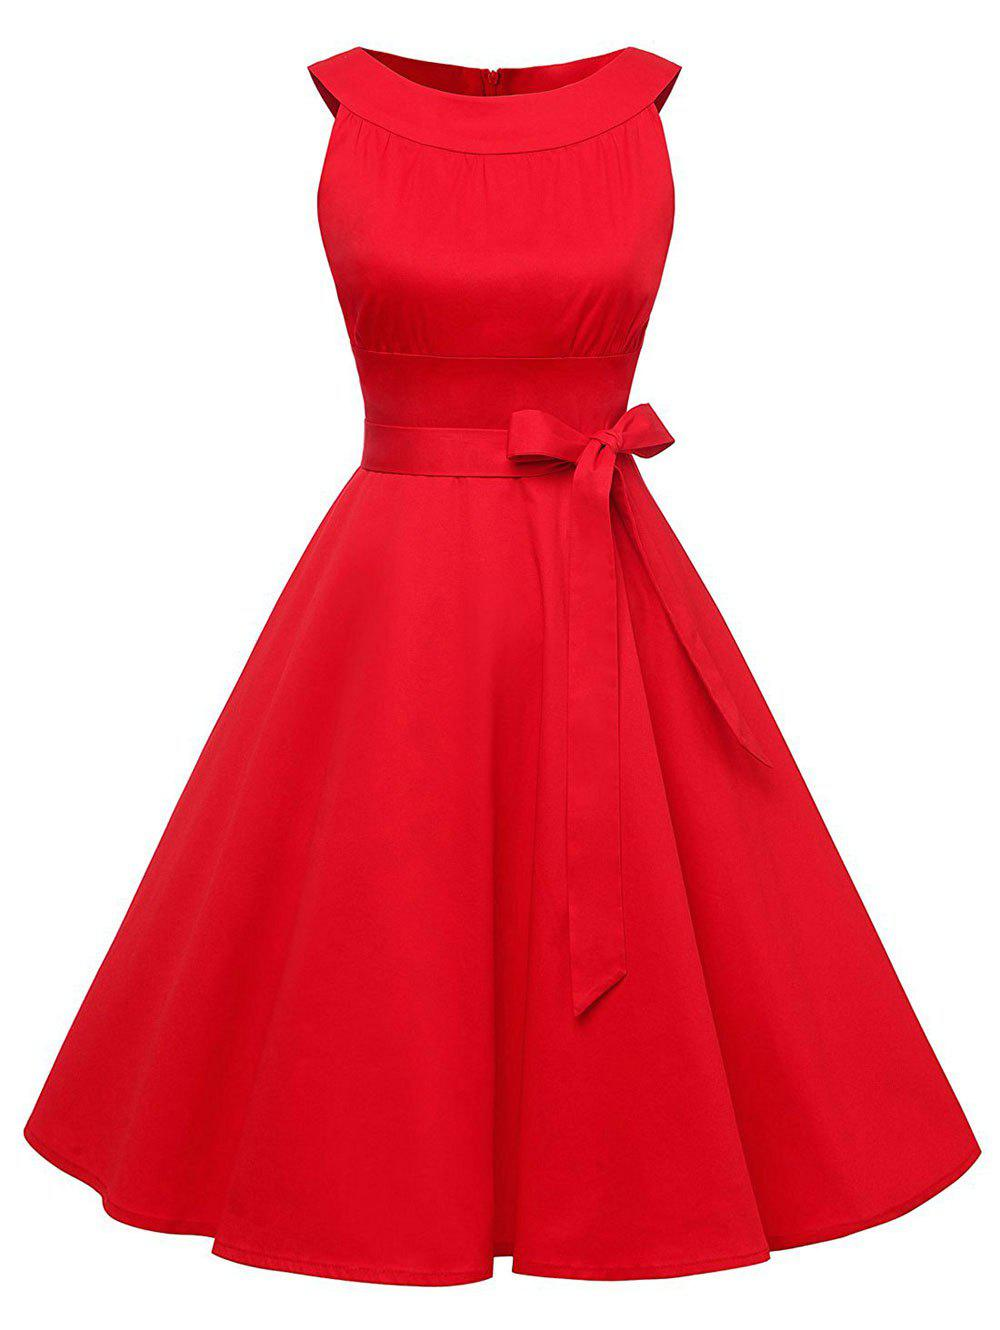 Vintage Belted Swing Pinup DressWOMEN<br><br>Size: XL; Color: RED; Style: Brief; Material: Cotton,Polyester,Spandex; Silhouette: A-Line; Dresses Length: Knee-Length; Neckline: Round Collar; Sleeve Length: Sleeveless; Pattern Type: Solid Color; With Belt: No; Season: Fall,Spring; Weight: 0.4500kg; Package Contents: 1 x Dress;